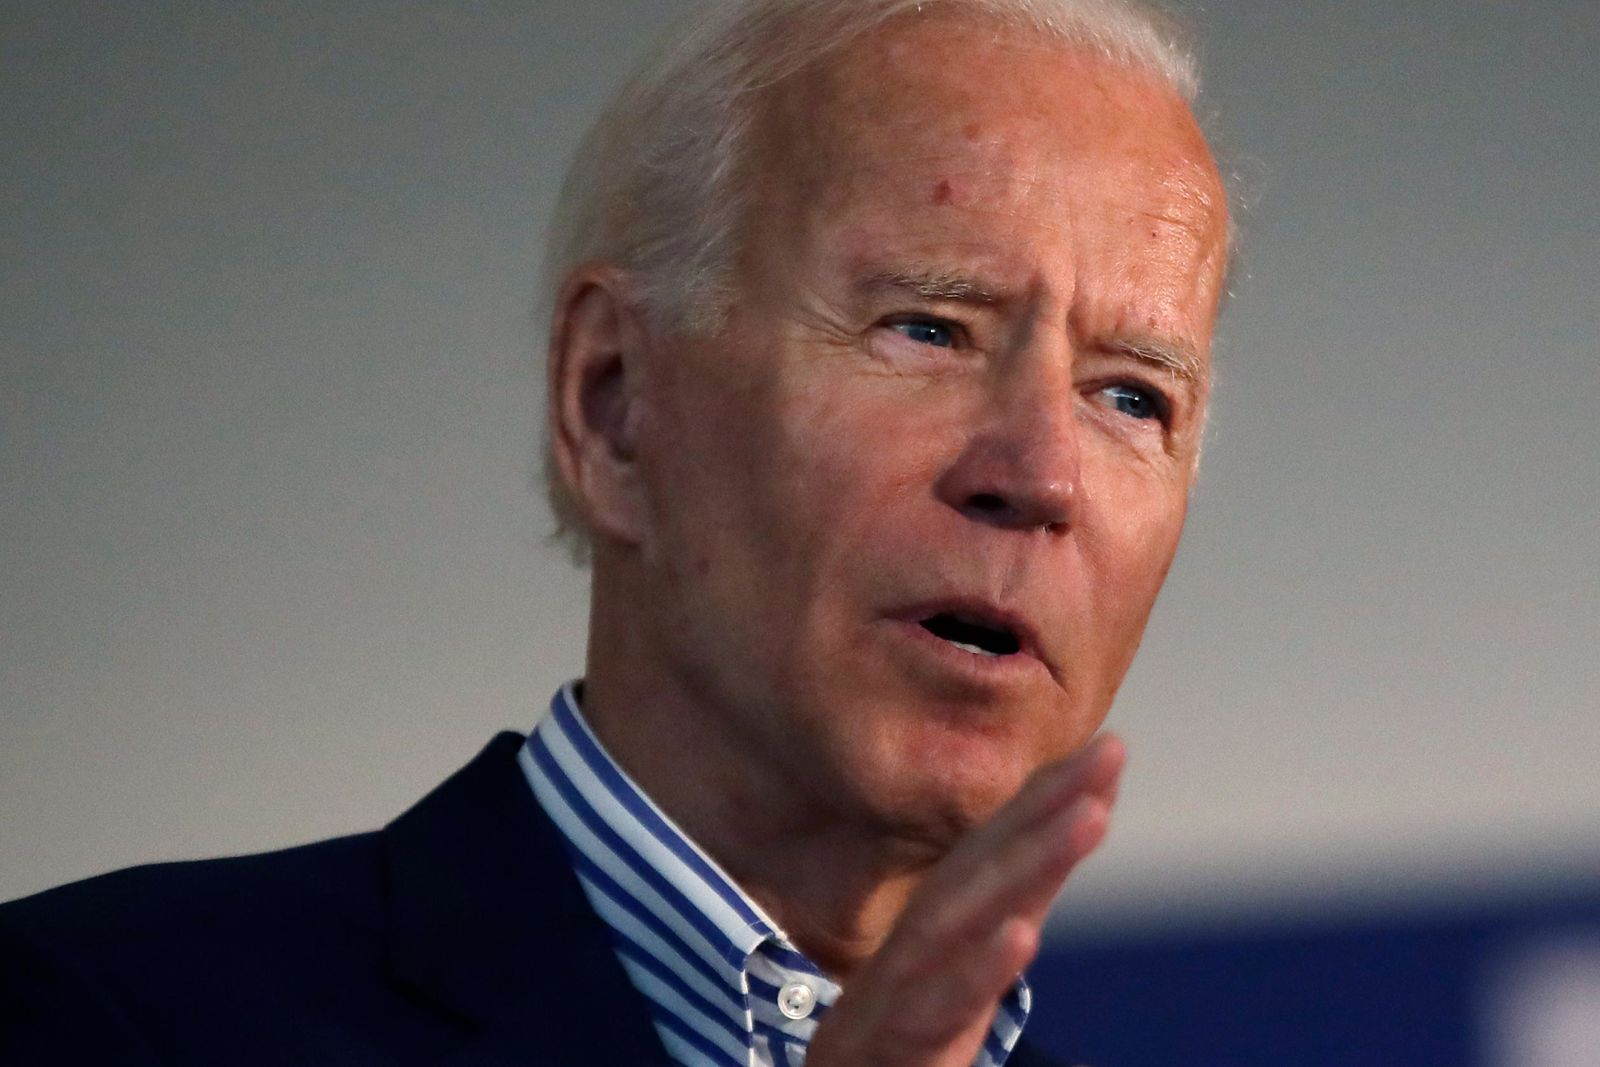 Democratic presidential candidate former Vice President Joe Biden speaks during a campaign event at Dartmouth College, Friday, Aug. 23, 2019, in Hanover, N.H. (AP Photo/Elise Amendola)